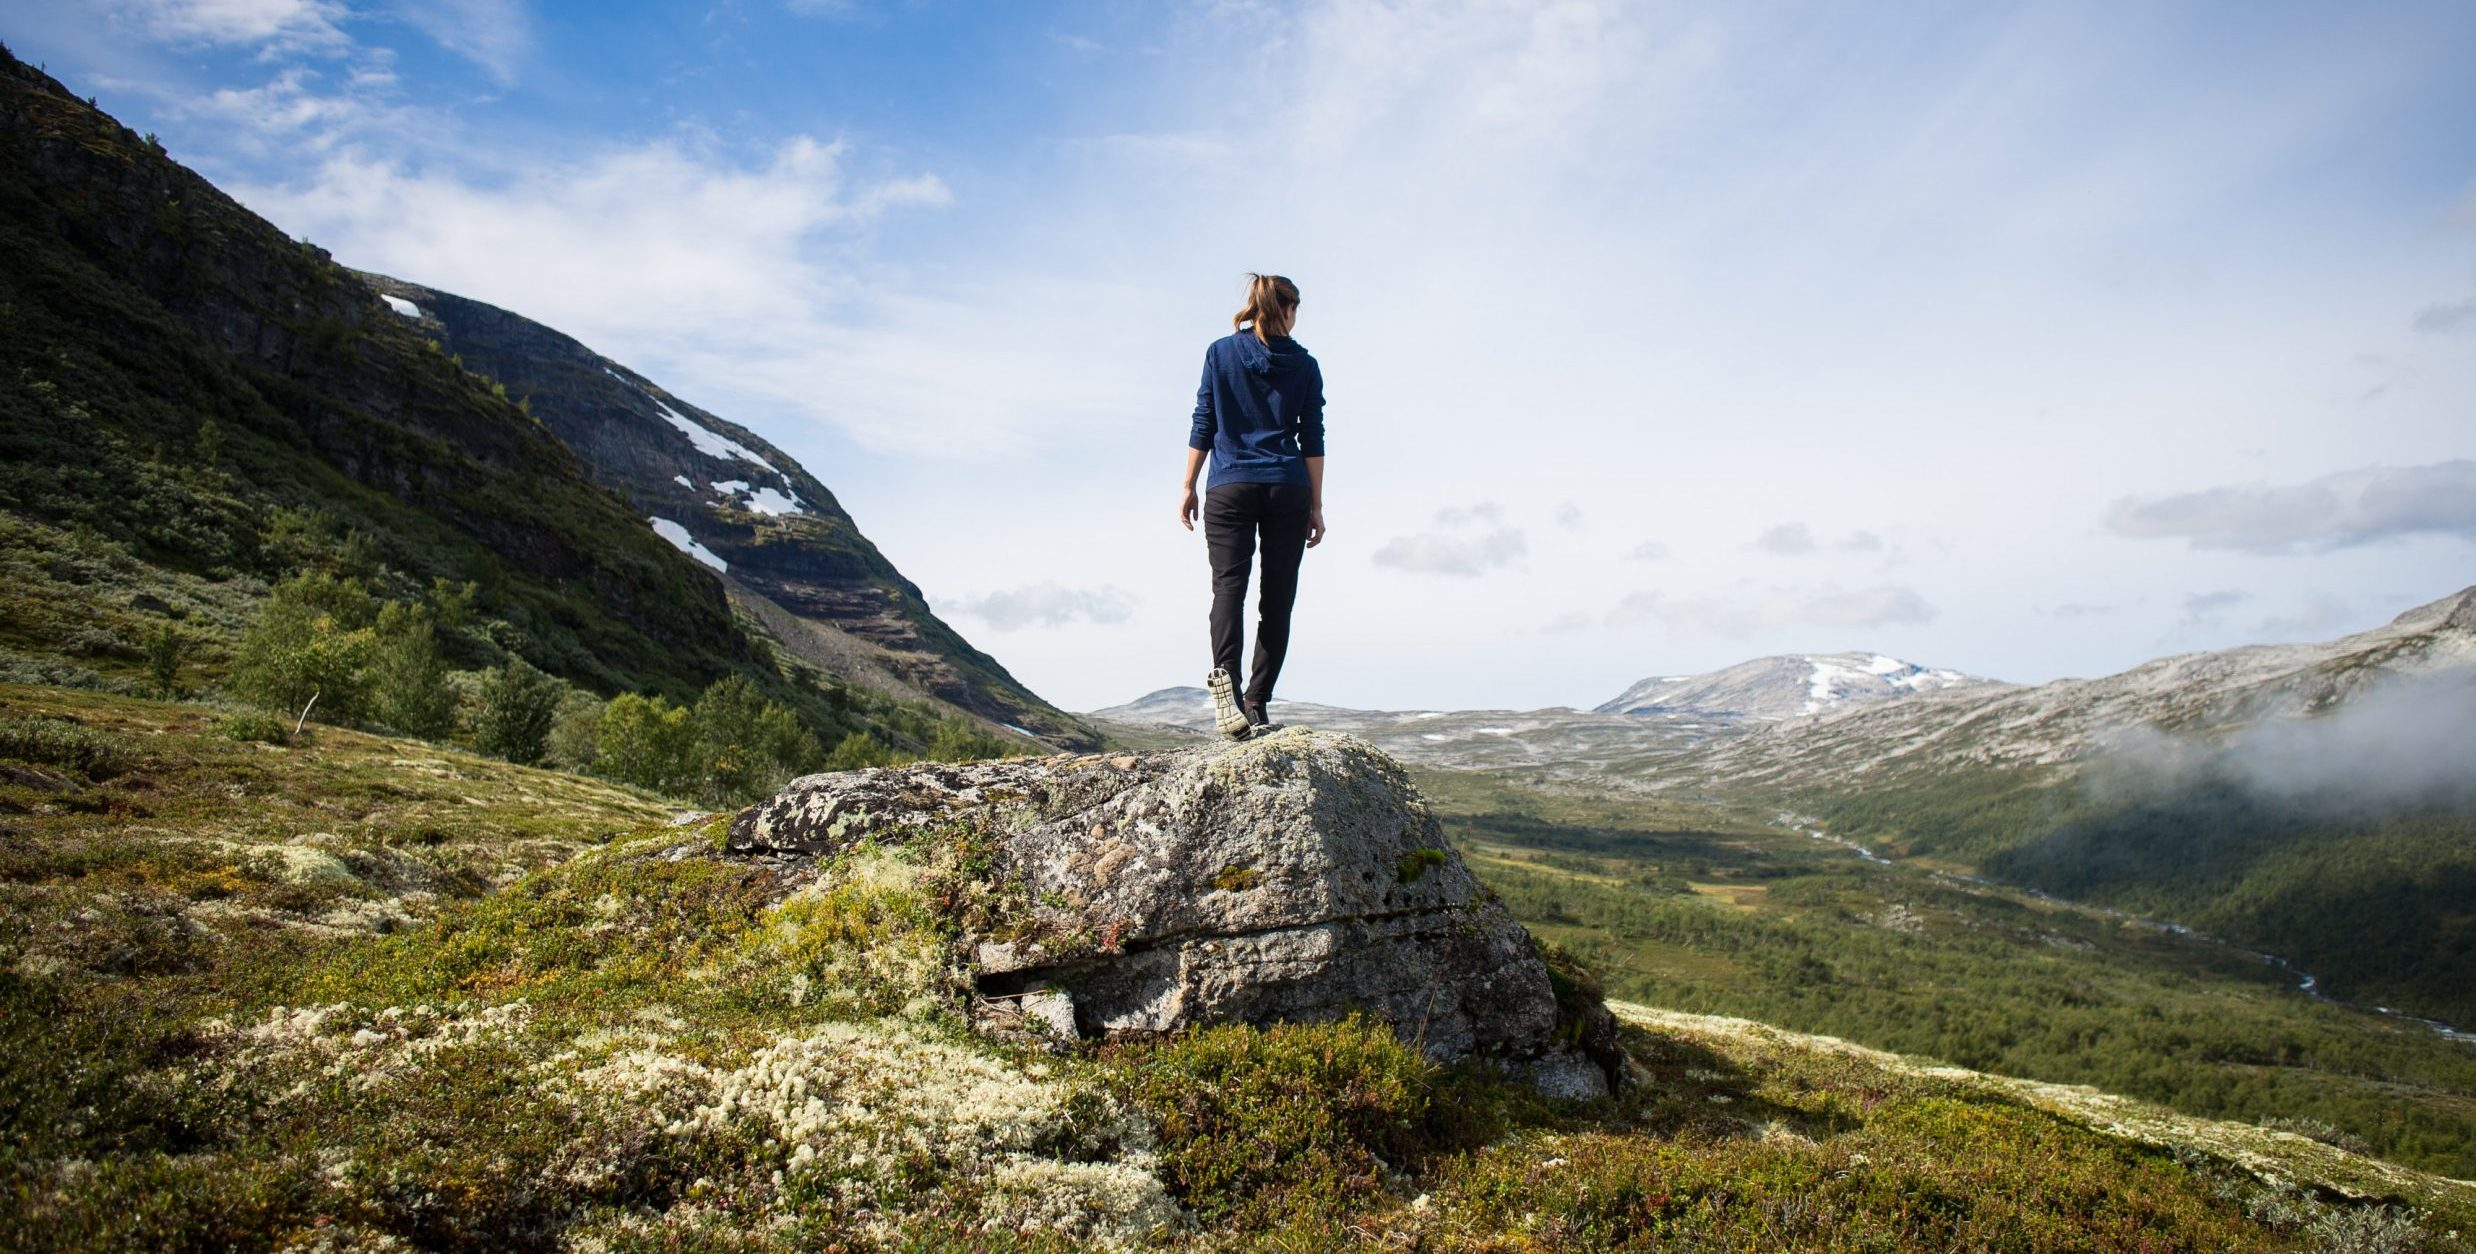 Hiking Alone As a Woman